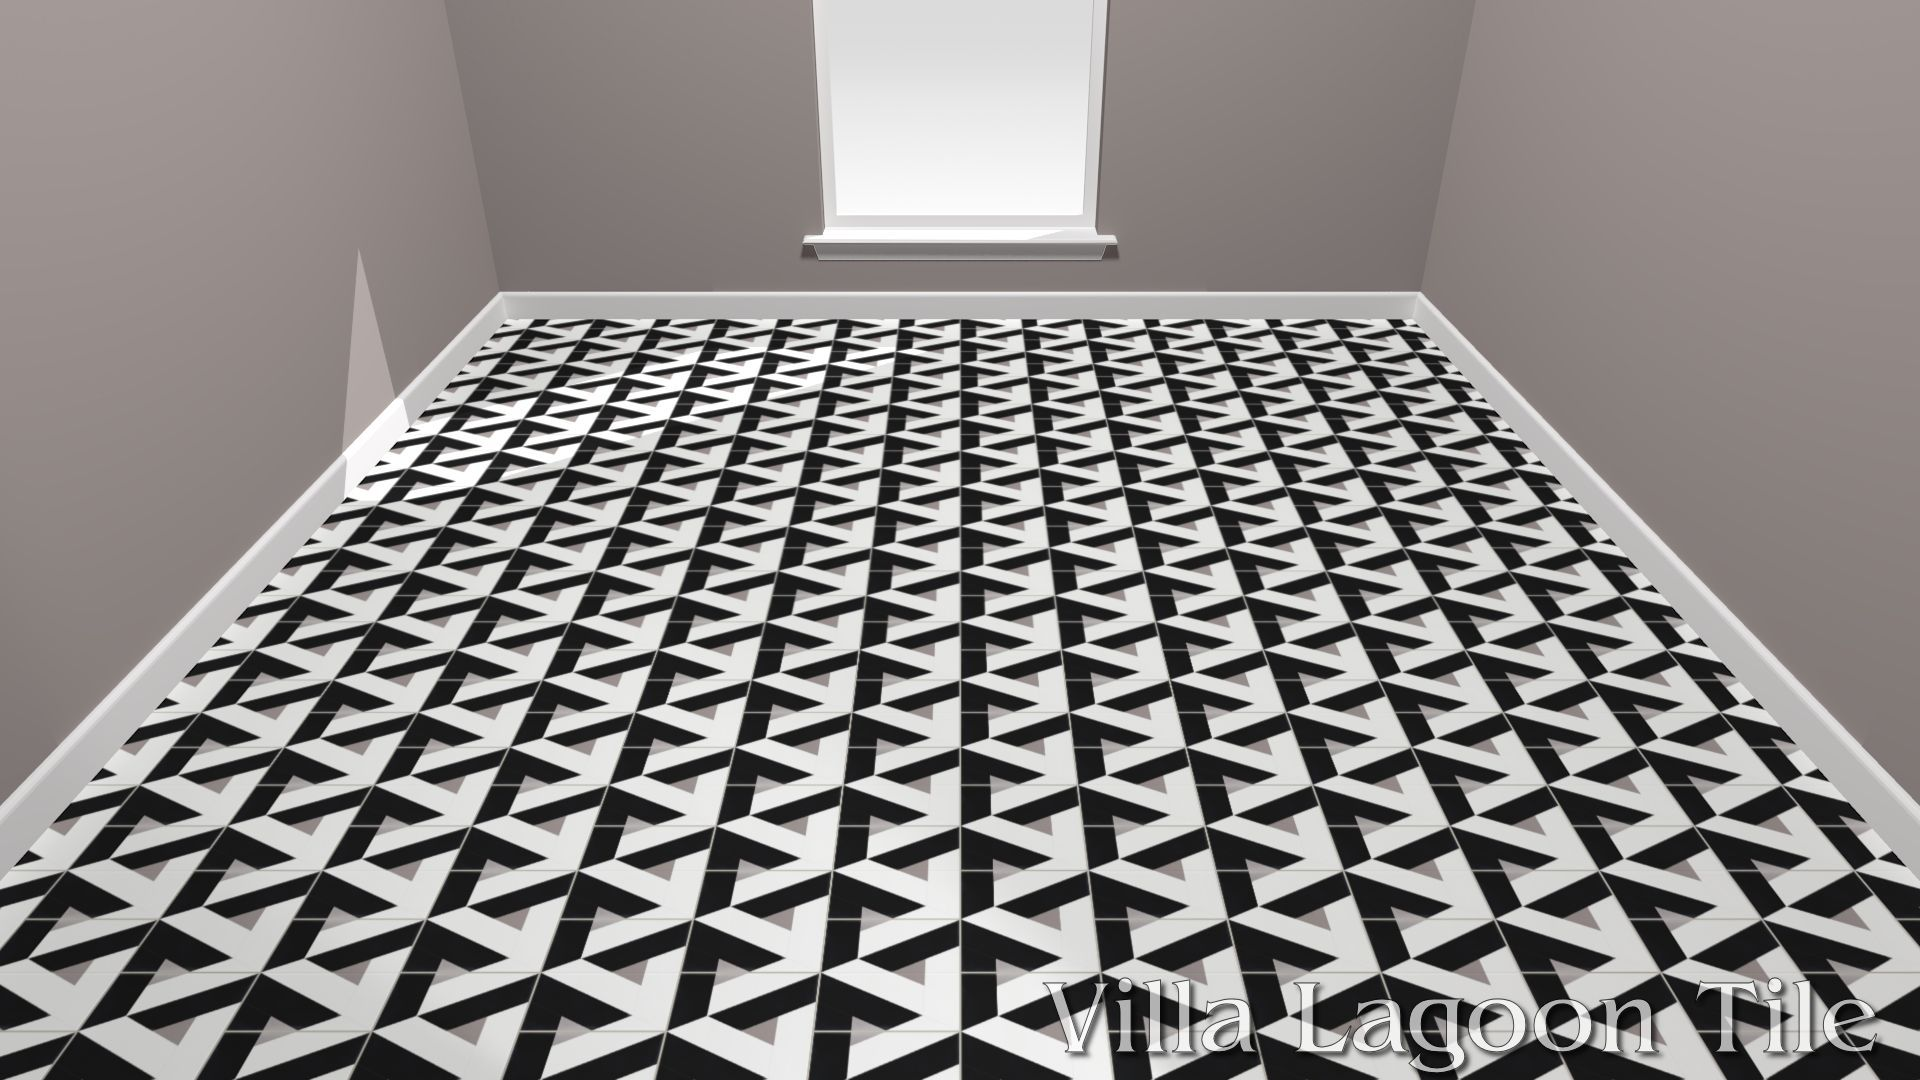 Photo mc escher floor tiles images escher style flooring escher style flooring thefloorsco dailygadgetfo Gallery